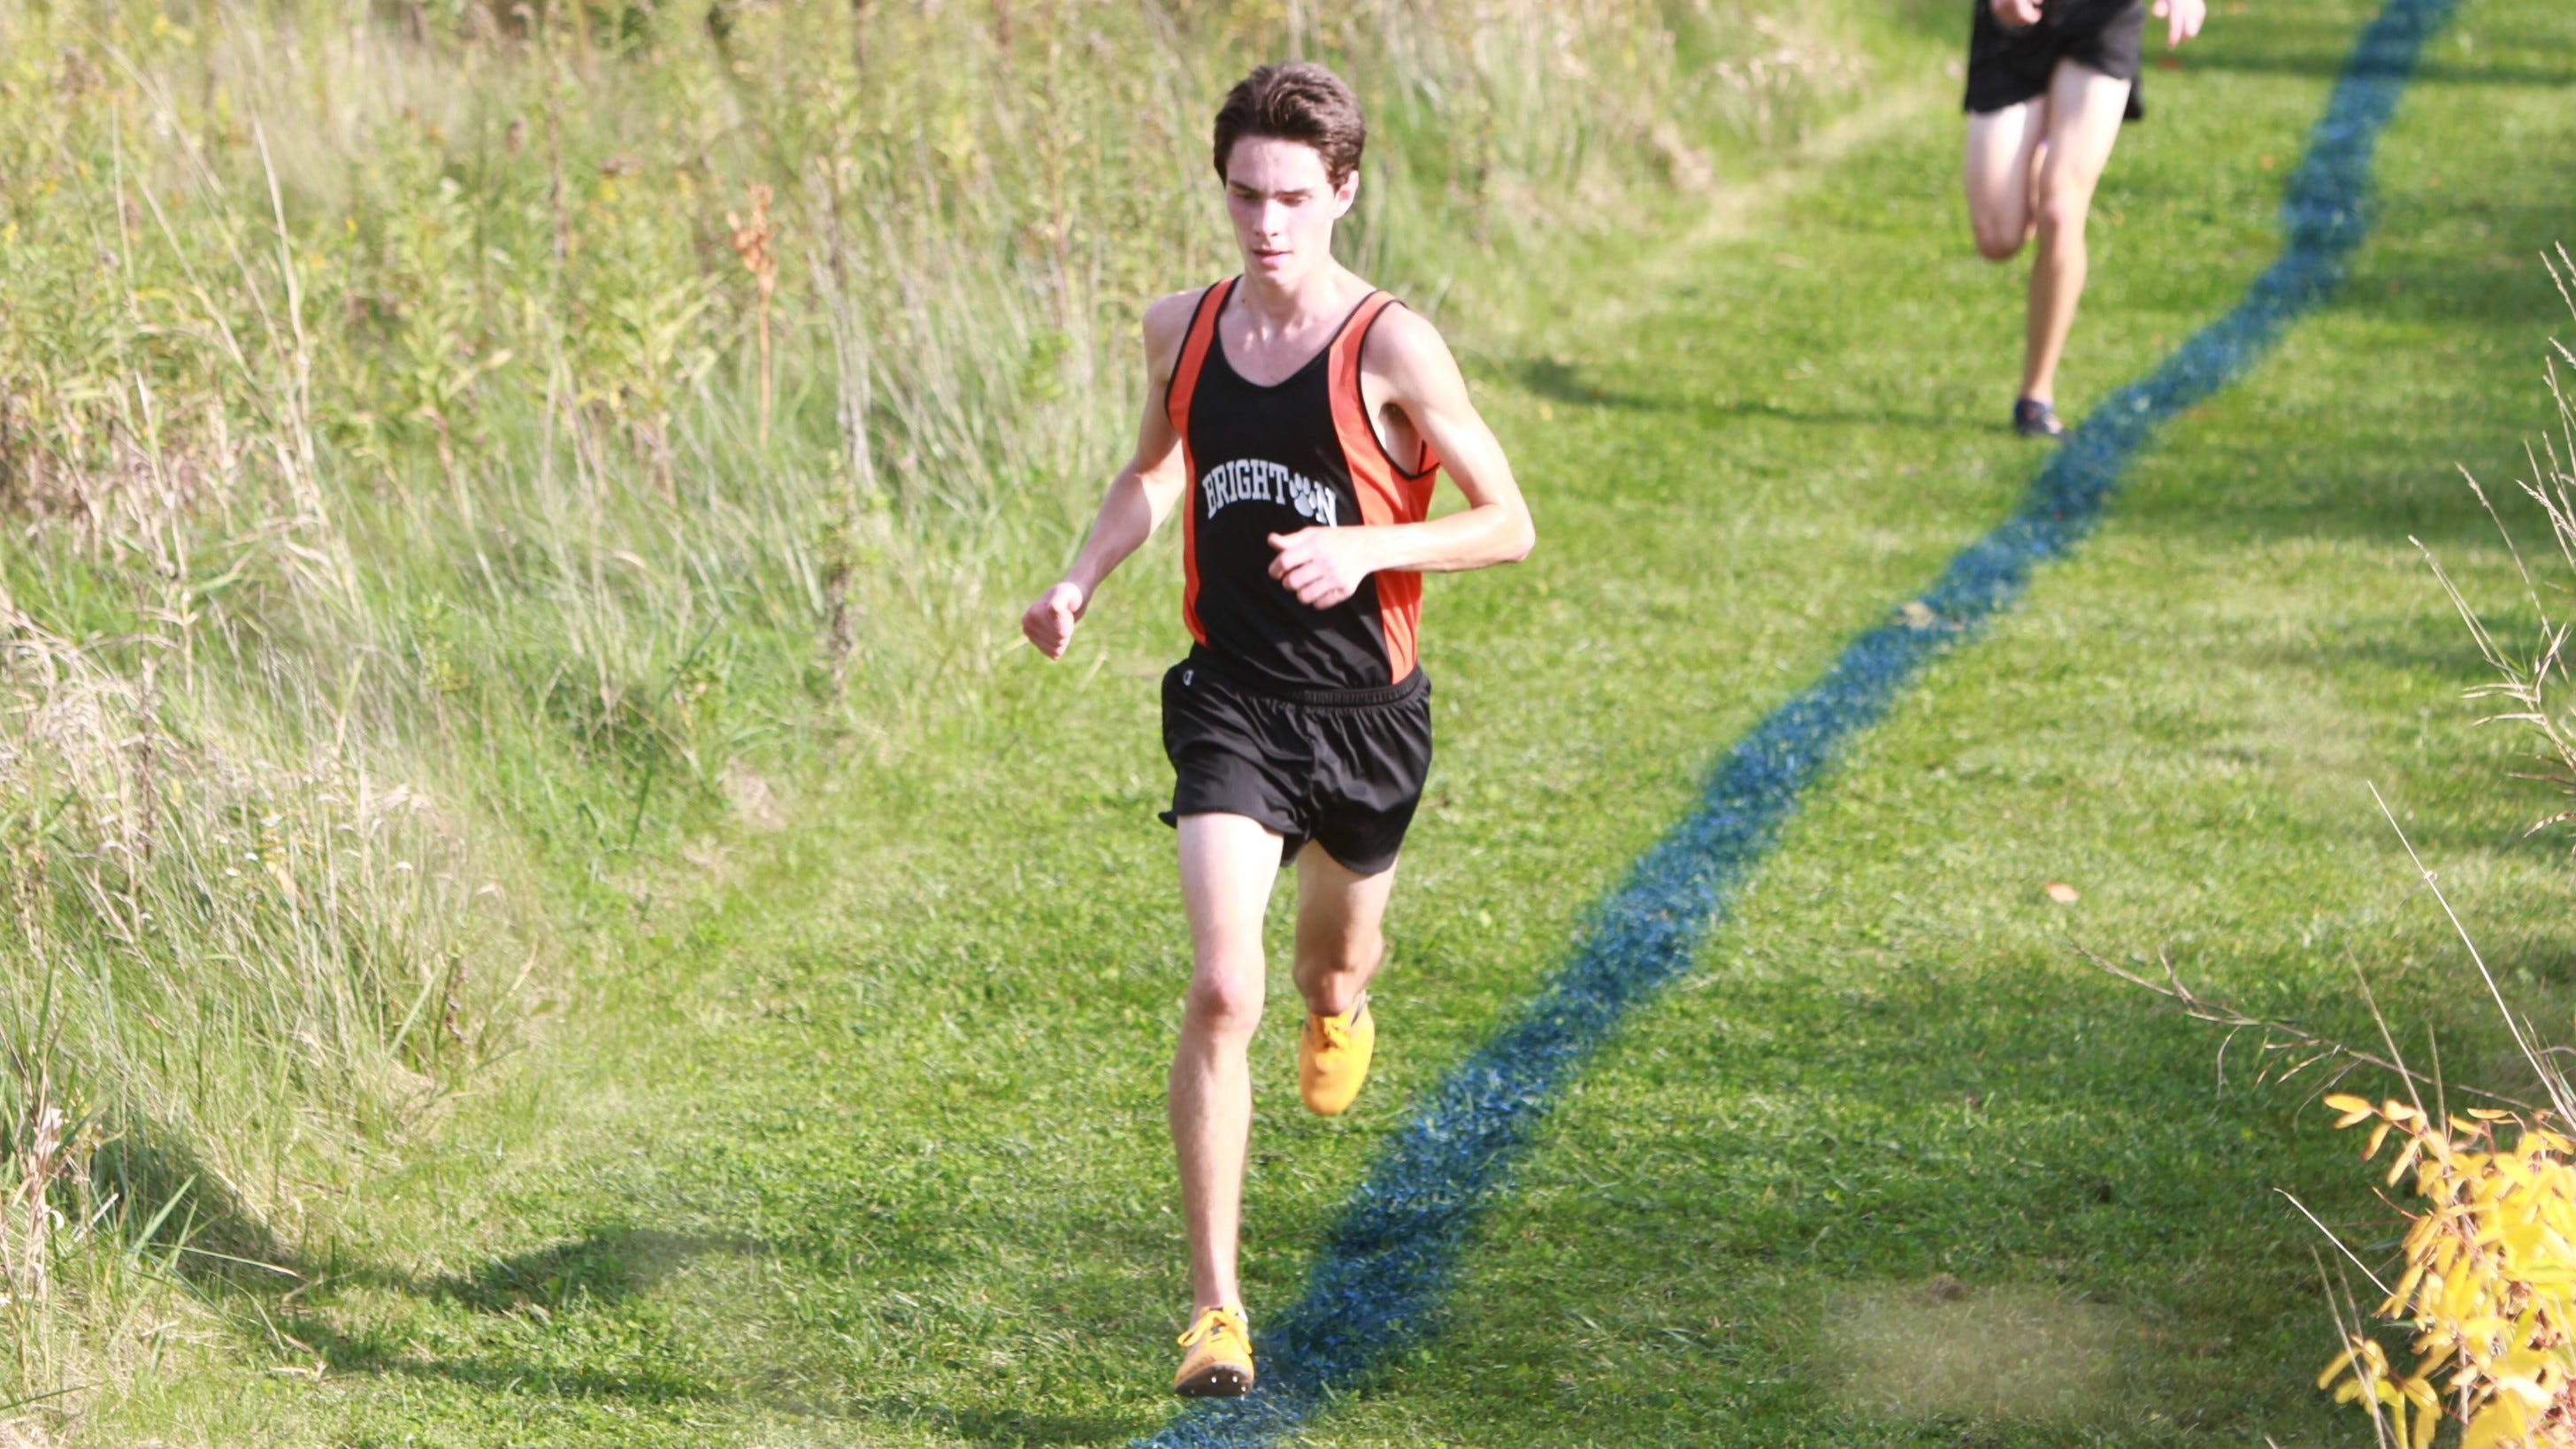 3de29a243 Brighton s Zach Stewart made fast friends at Foot Locker cross country  championship